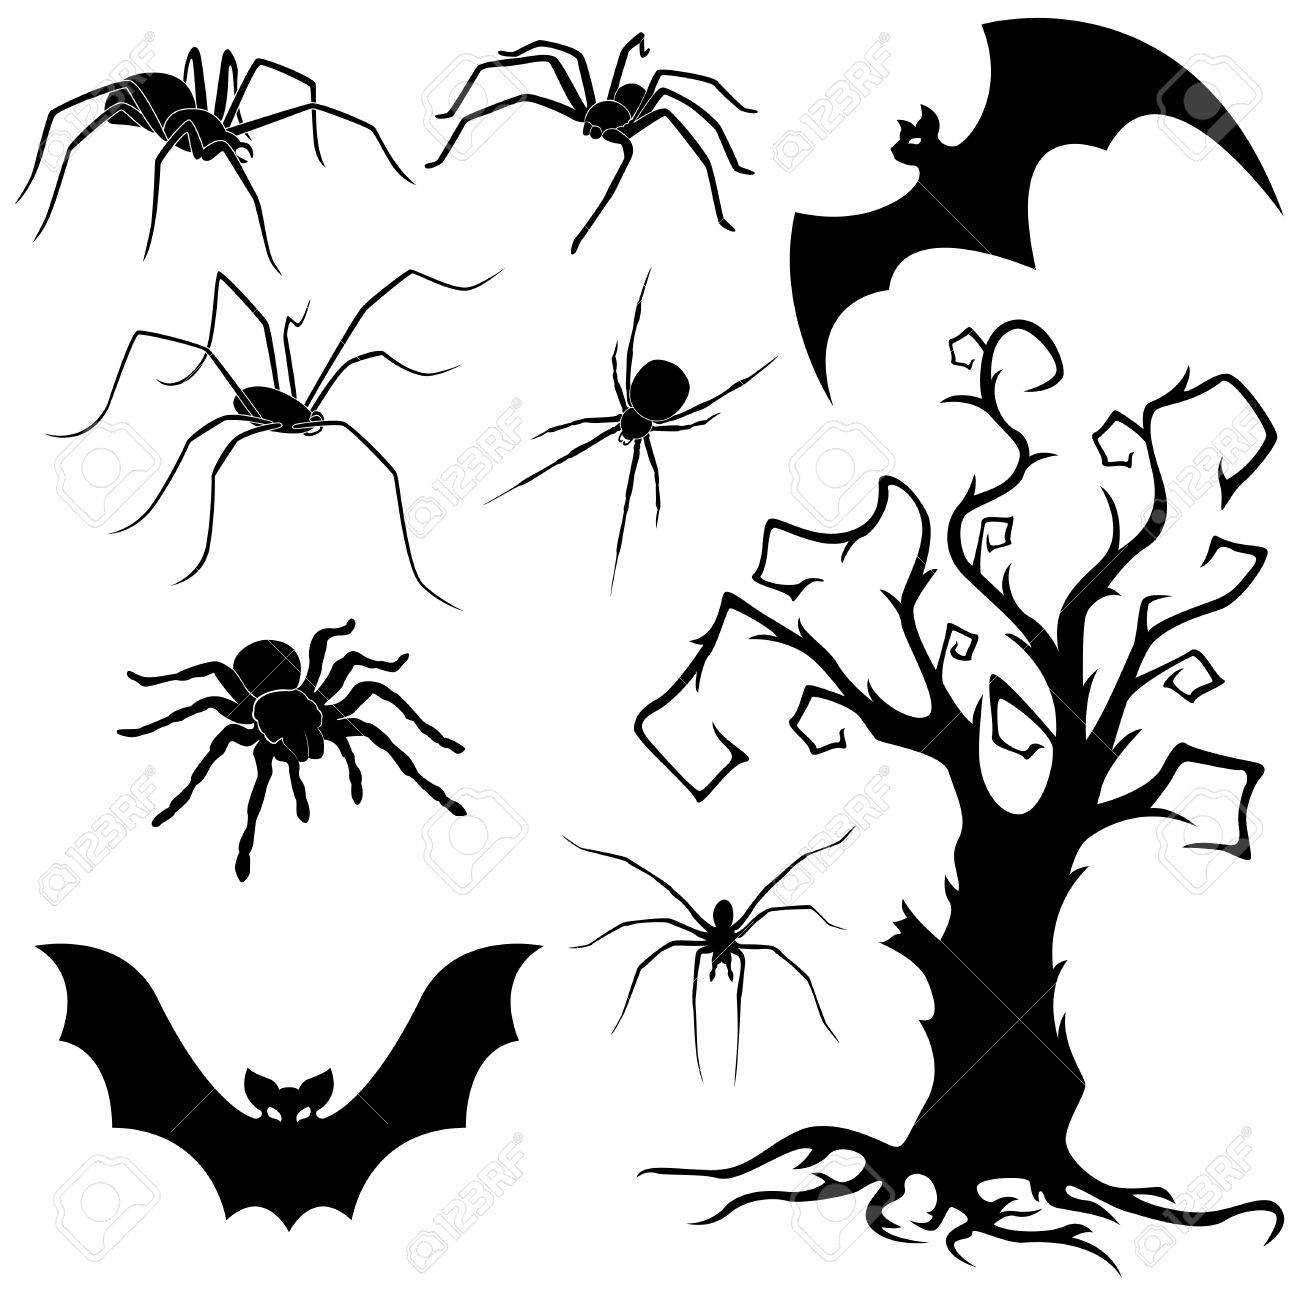 1300x1300 Halloween Silhouette Set Of Spiders, Flying Bats And Old Dried